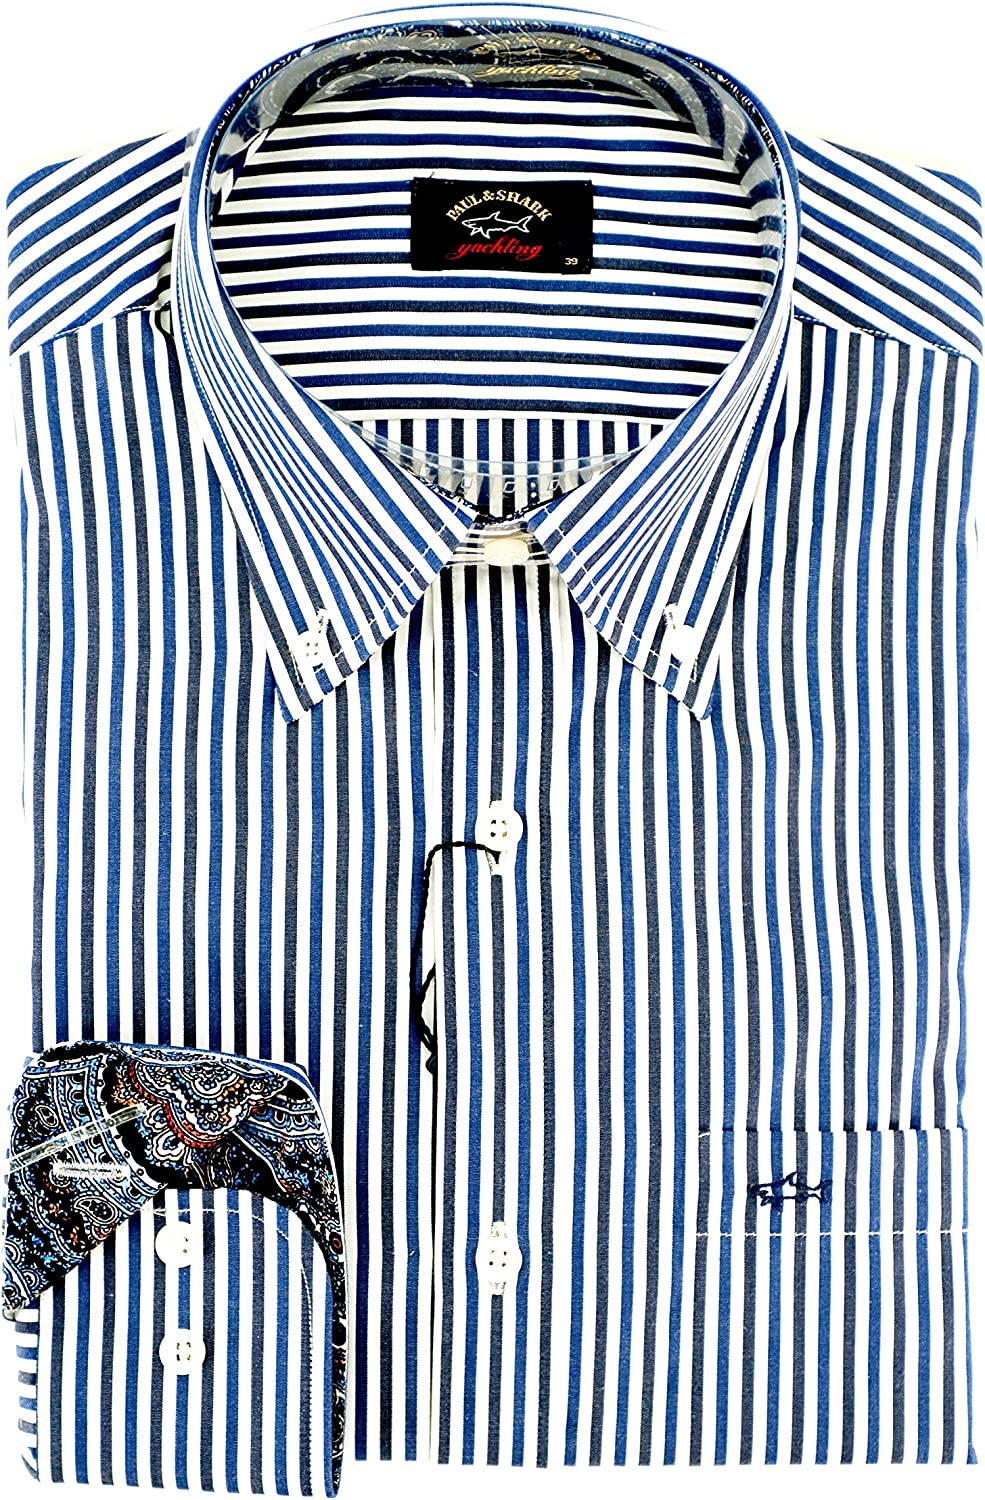 PAUL & SHARK Casual, Cotton, Shirt multicolor 40: Amazon.es: Ropa y accesorios